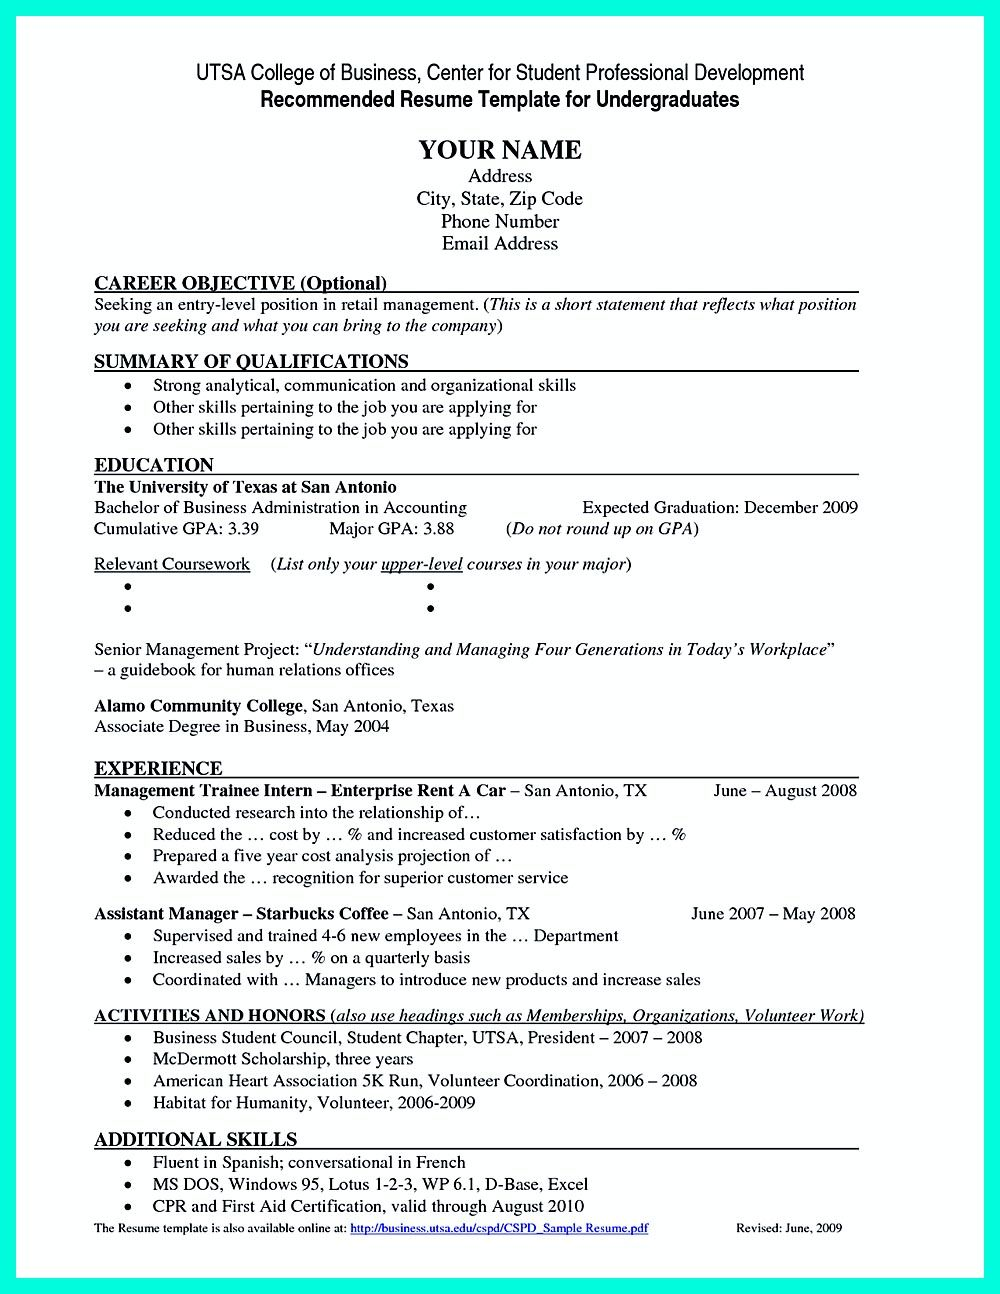 Current college student resume is designed for fresh